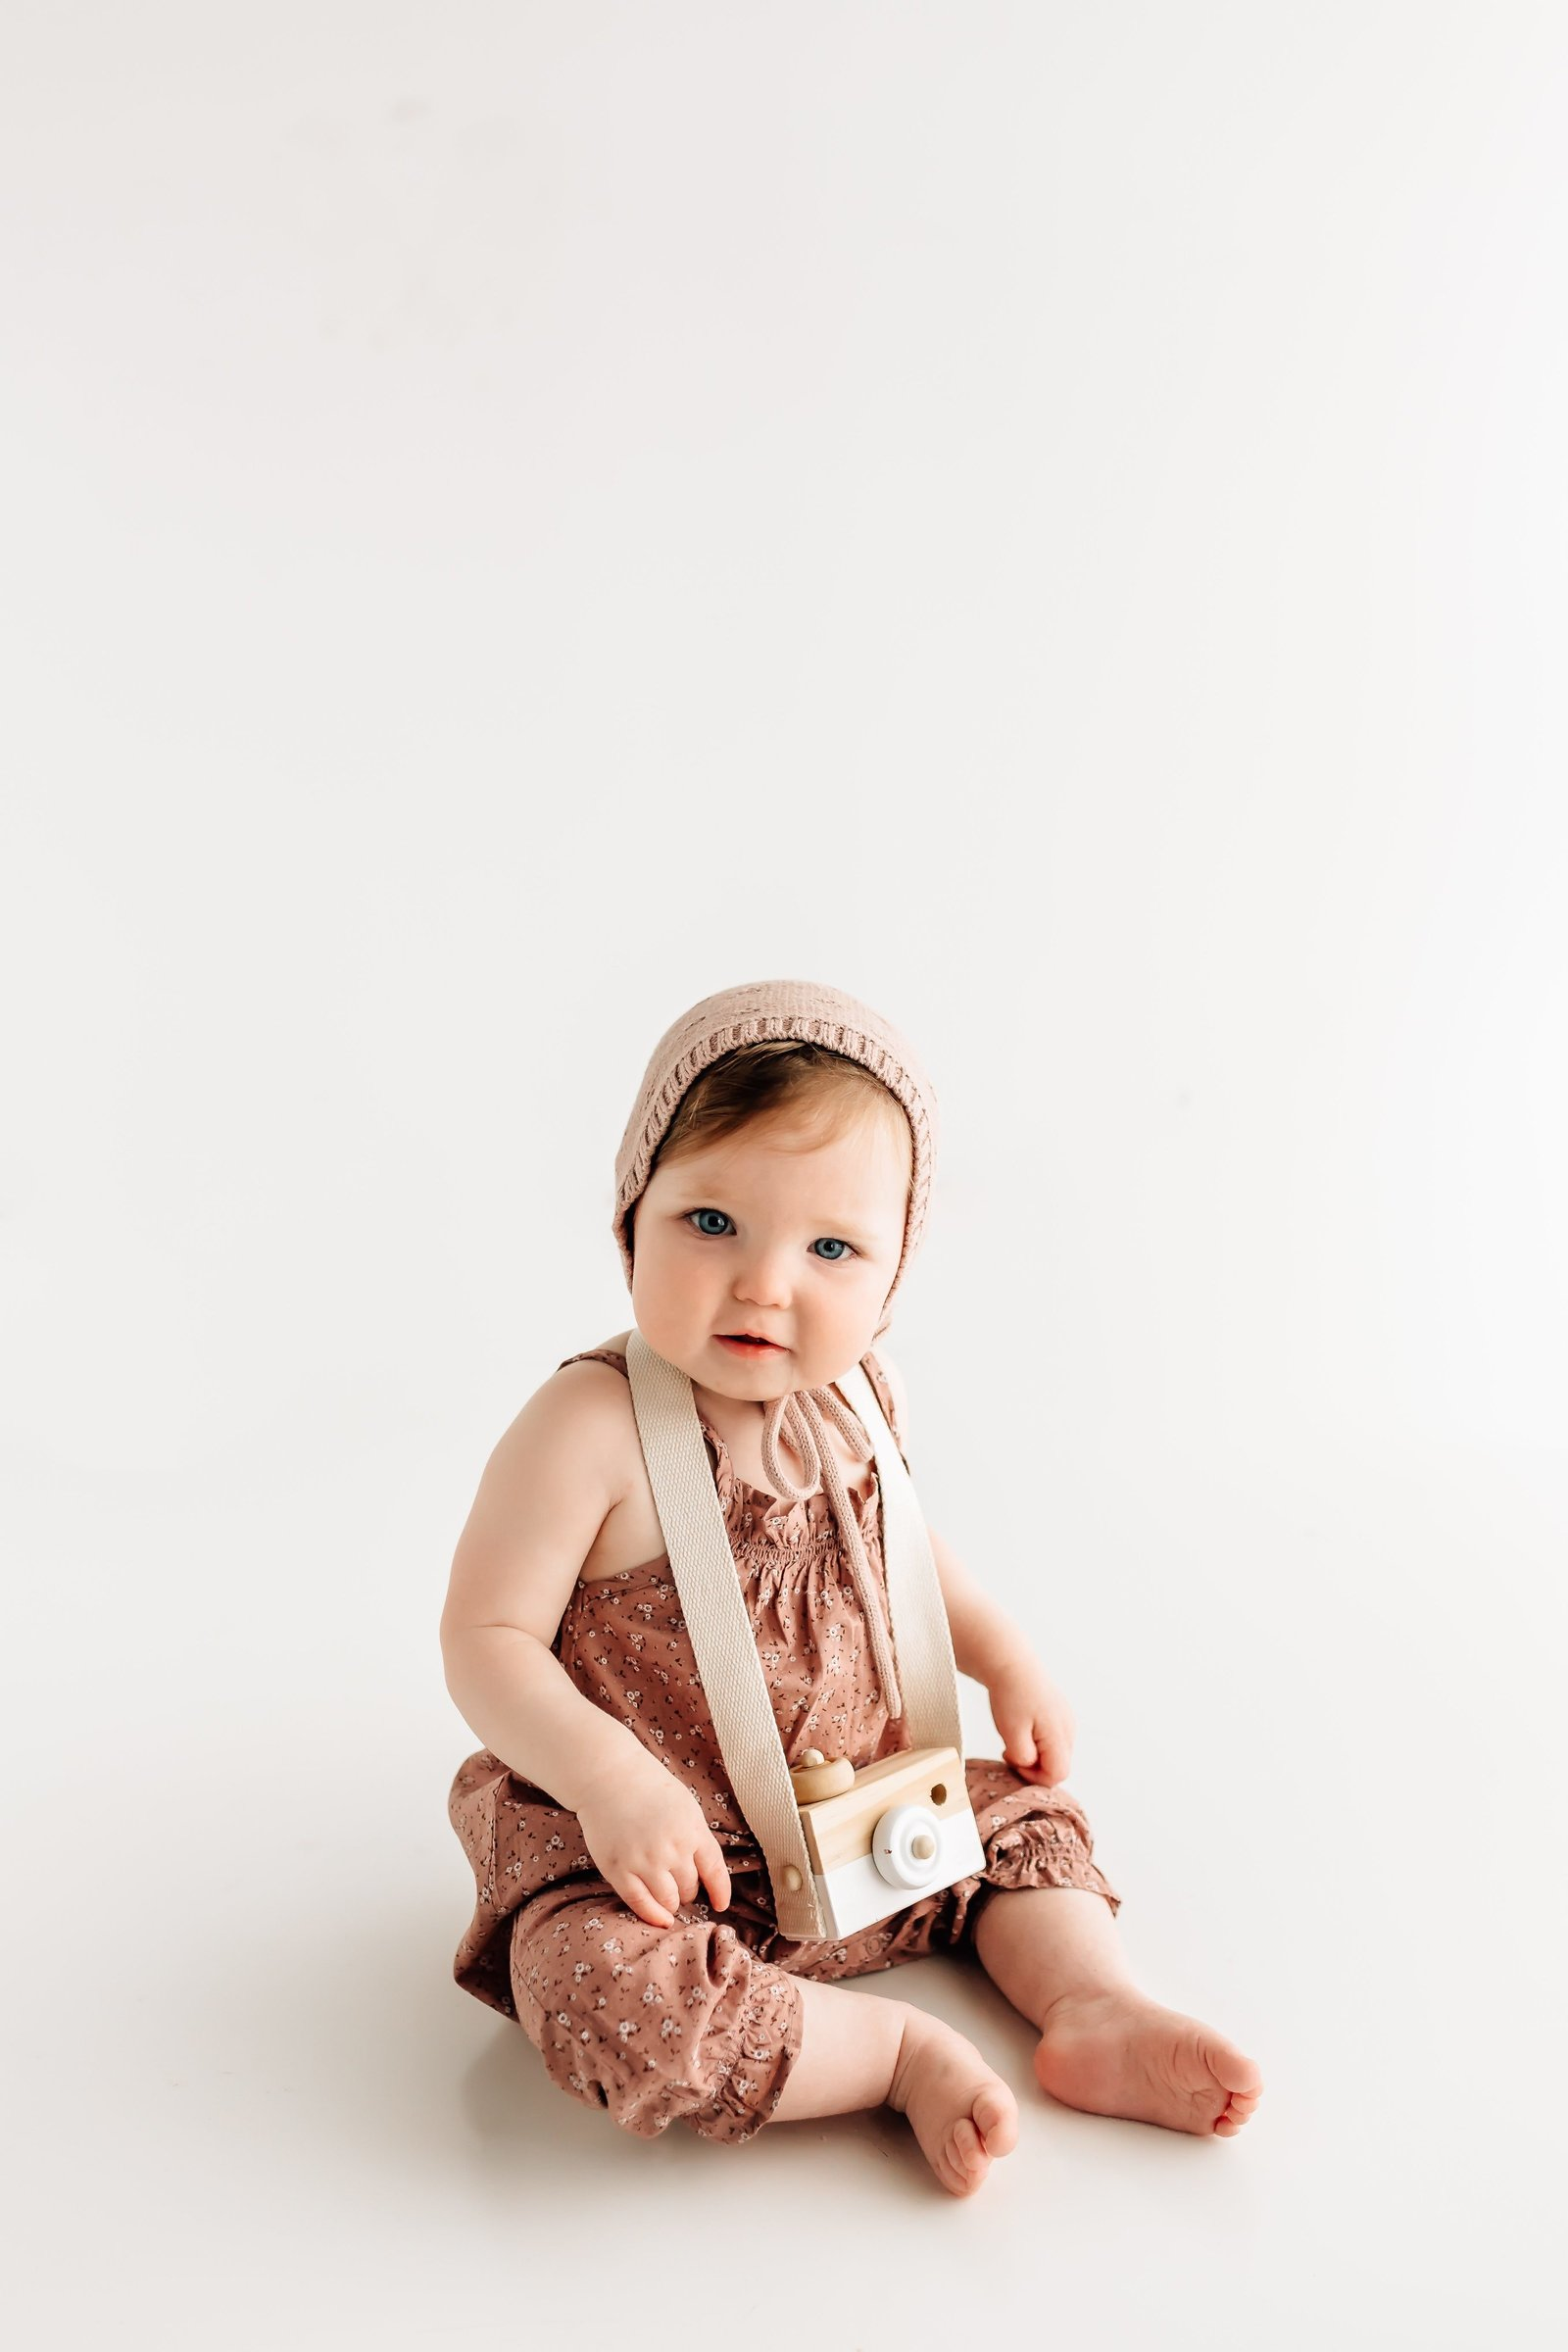 St_Louis_Baby_Photographer_Kelly_Laramore_Photography_13